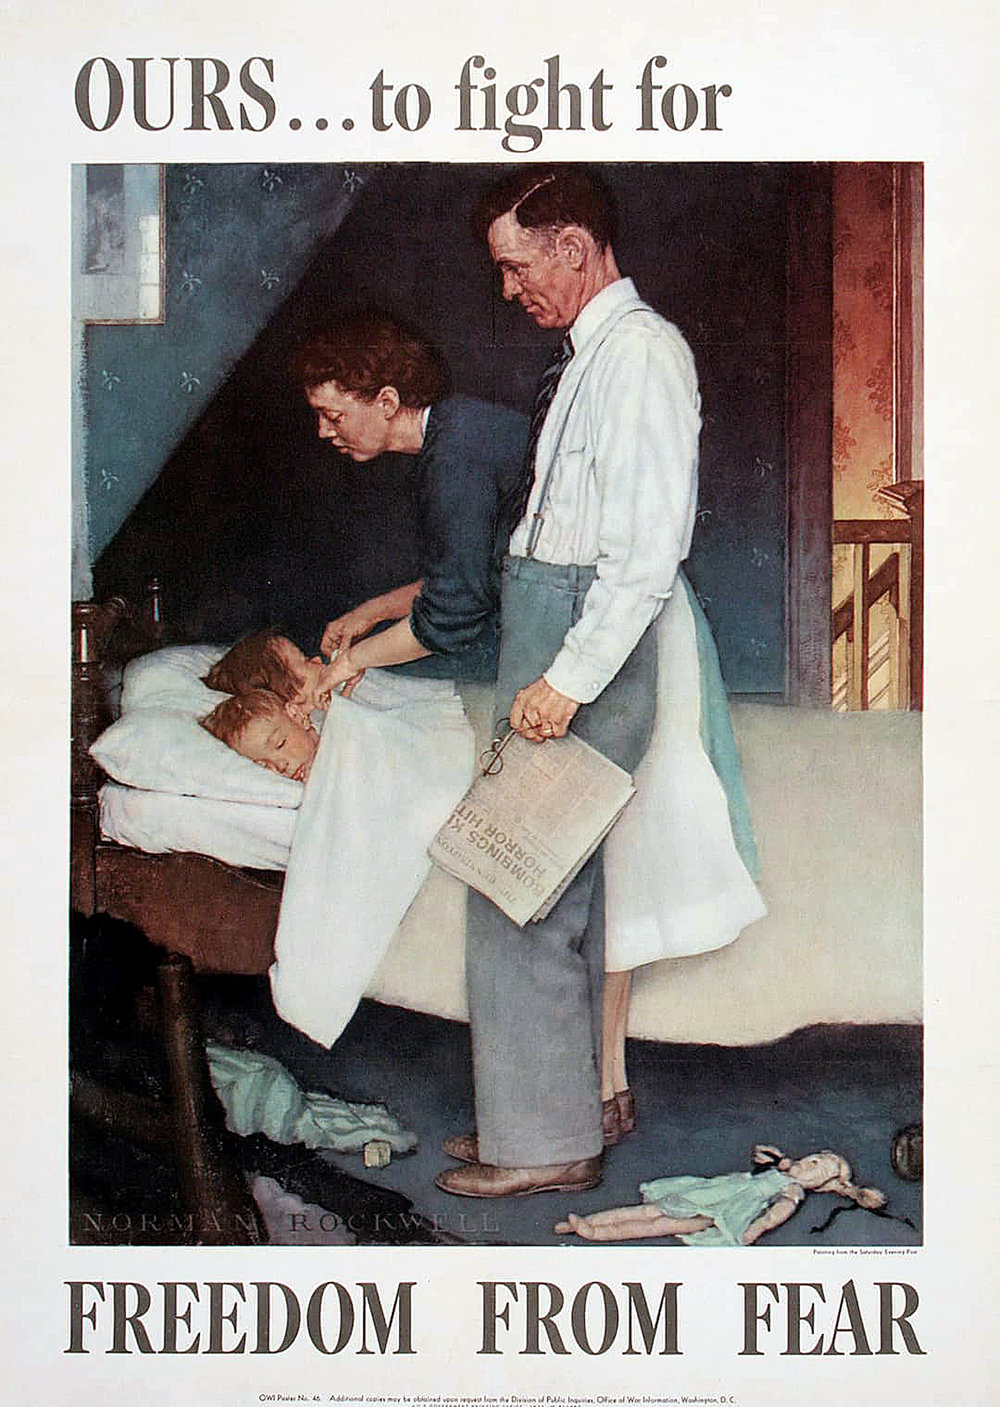 Norman Rockwell, Freedom from Fear, 1943